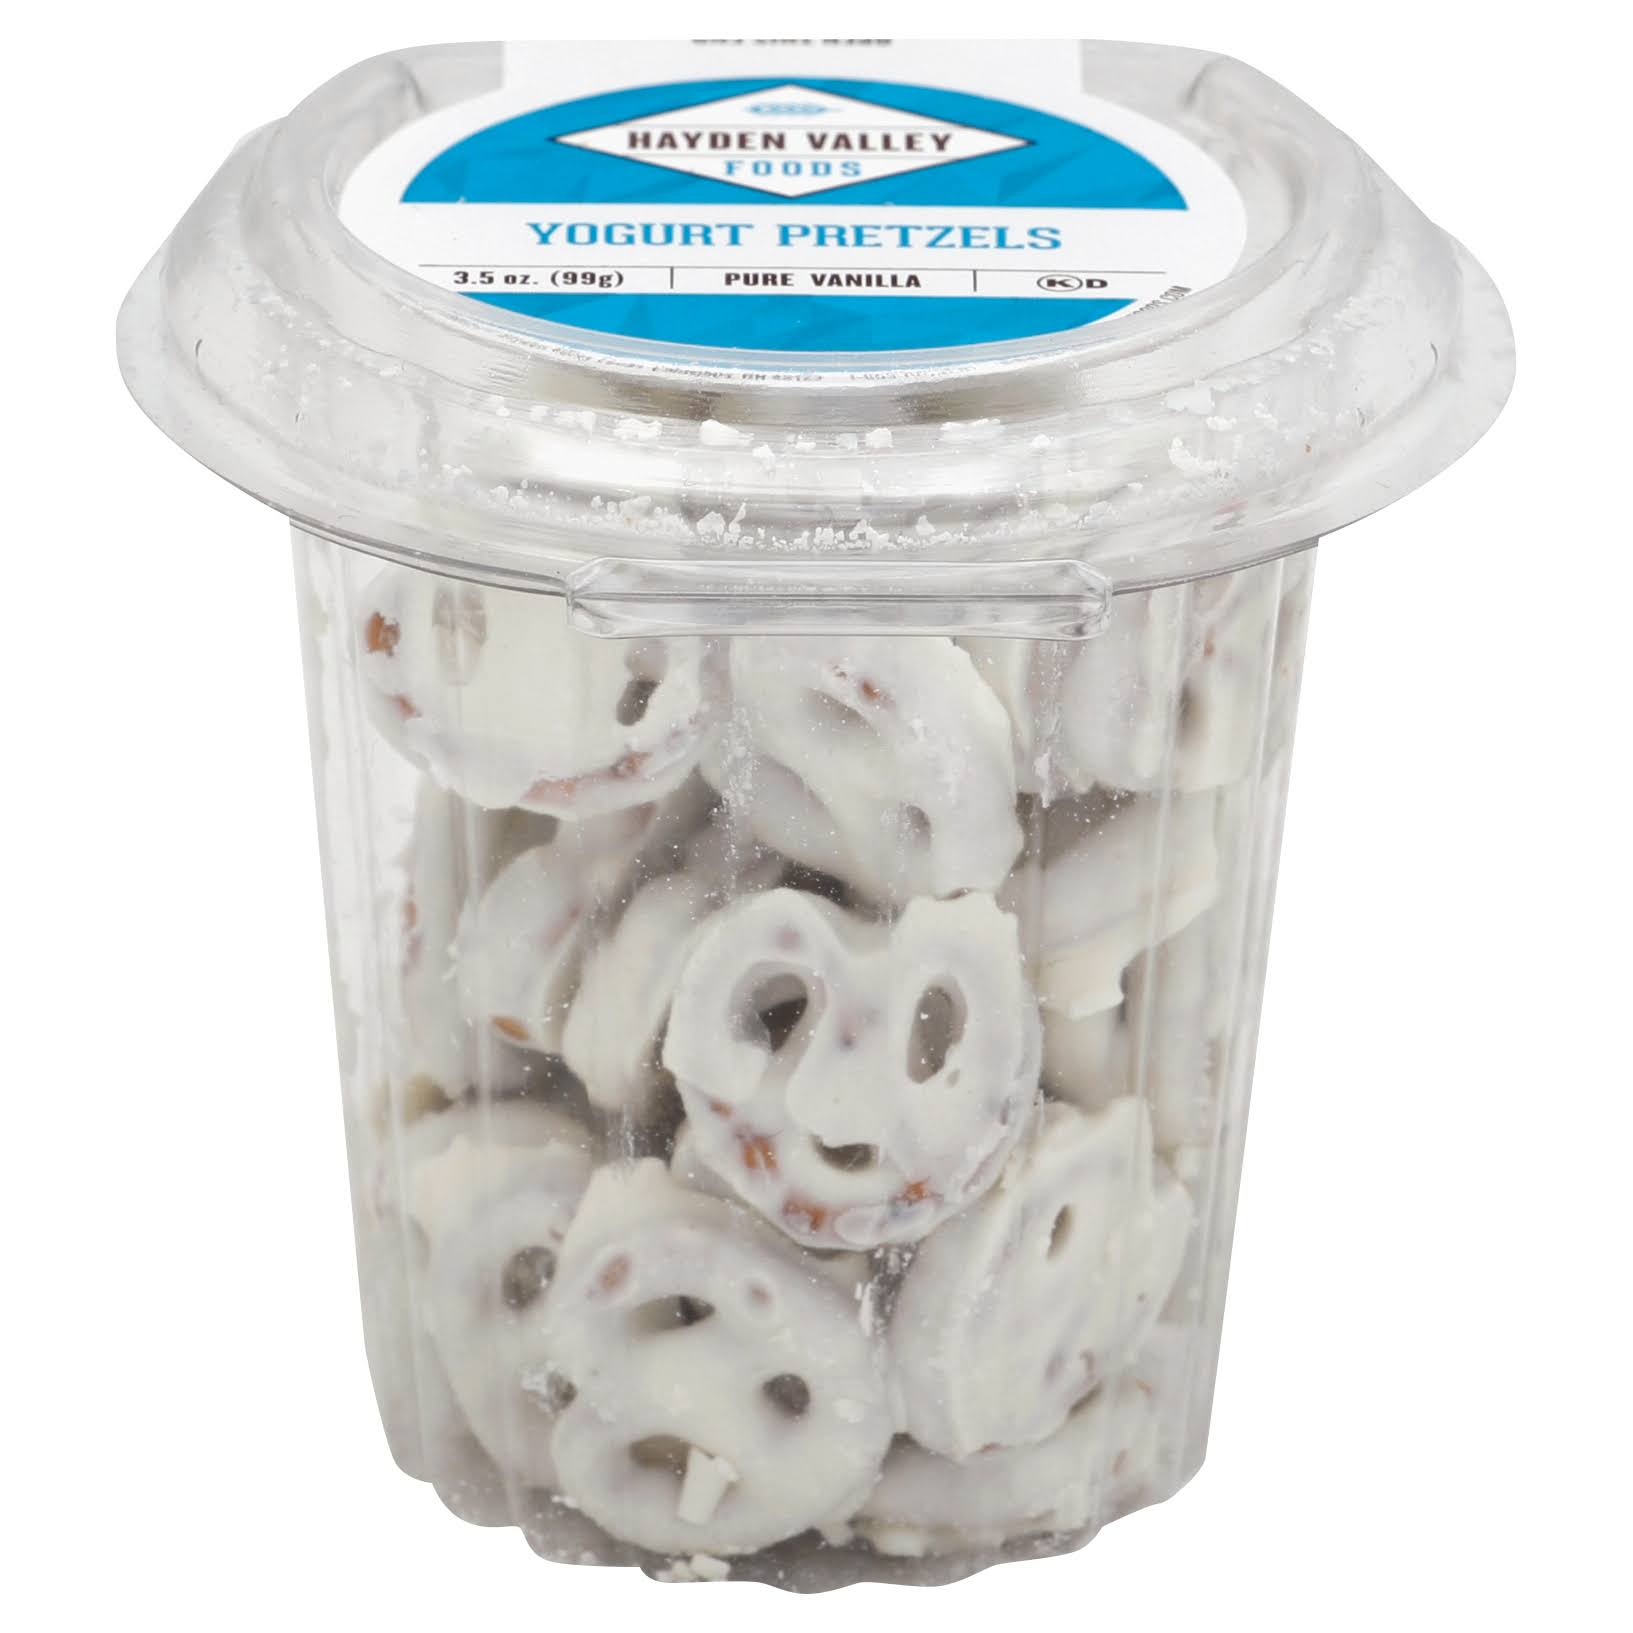 Hayden Valley Pretzels, Yogurt, Pure Vanilla - 3.5 oz